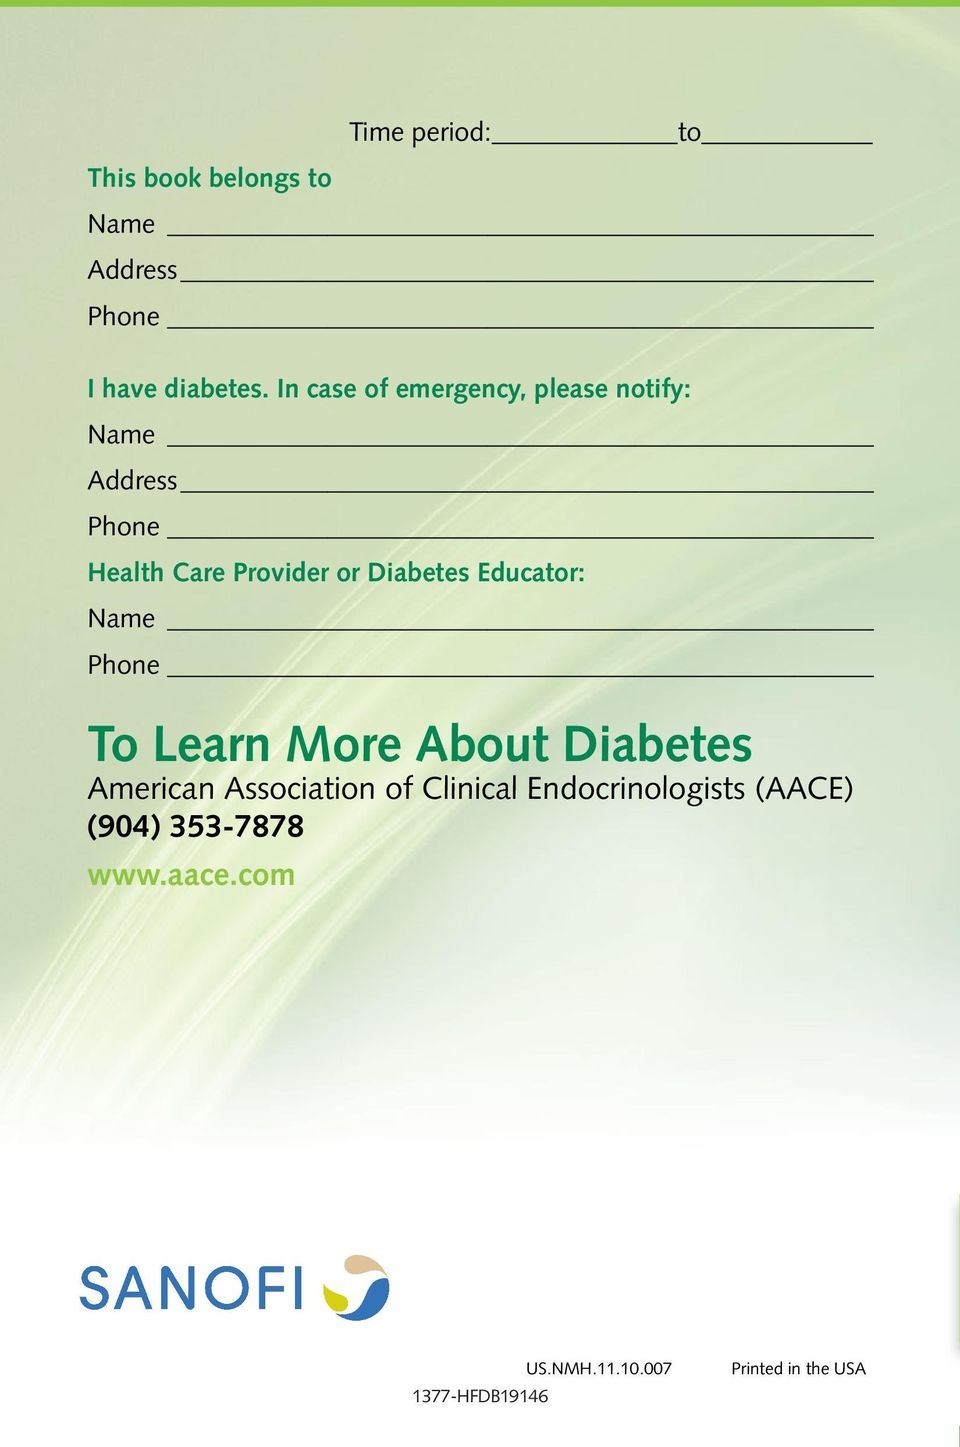 Diabetes Educator: Name Phone To Learn More About Diabetes American Association of